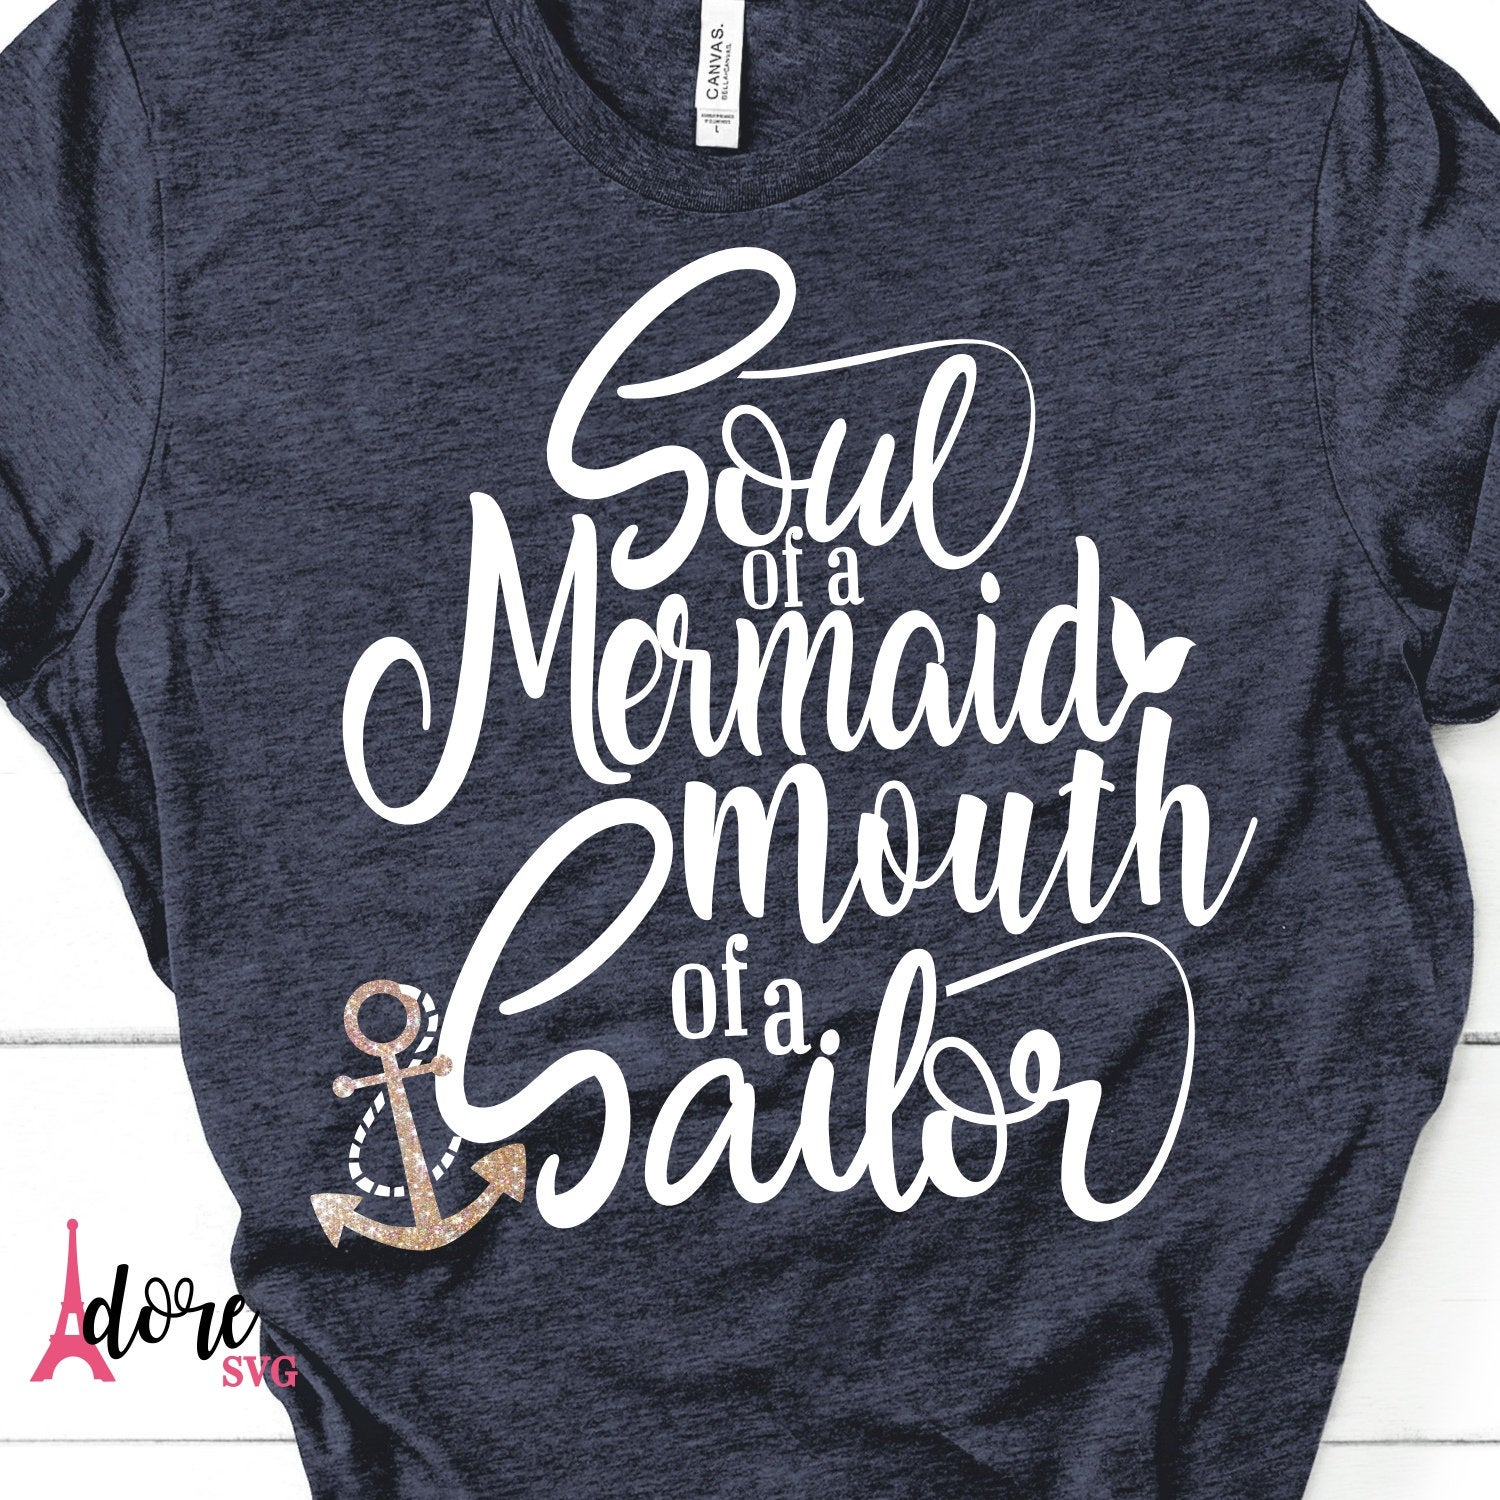 Soul-of-a-mermaid-svgmouth-of-a-sailor-svgsailor-svgfunny-svgfunny-quote-svgsvg-designsmermaid-svgsvg-cut-filescricut-cut-files-5e223c22